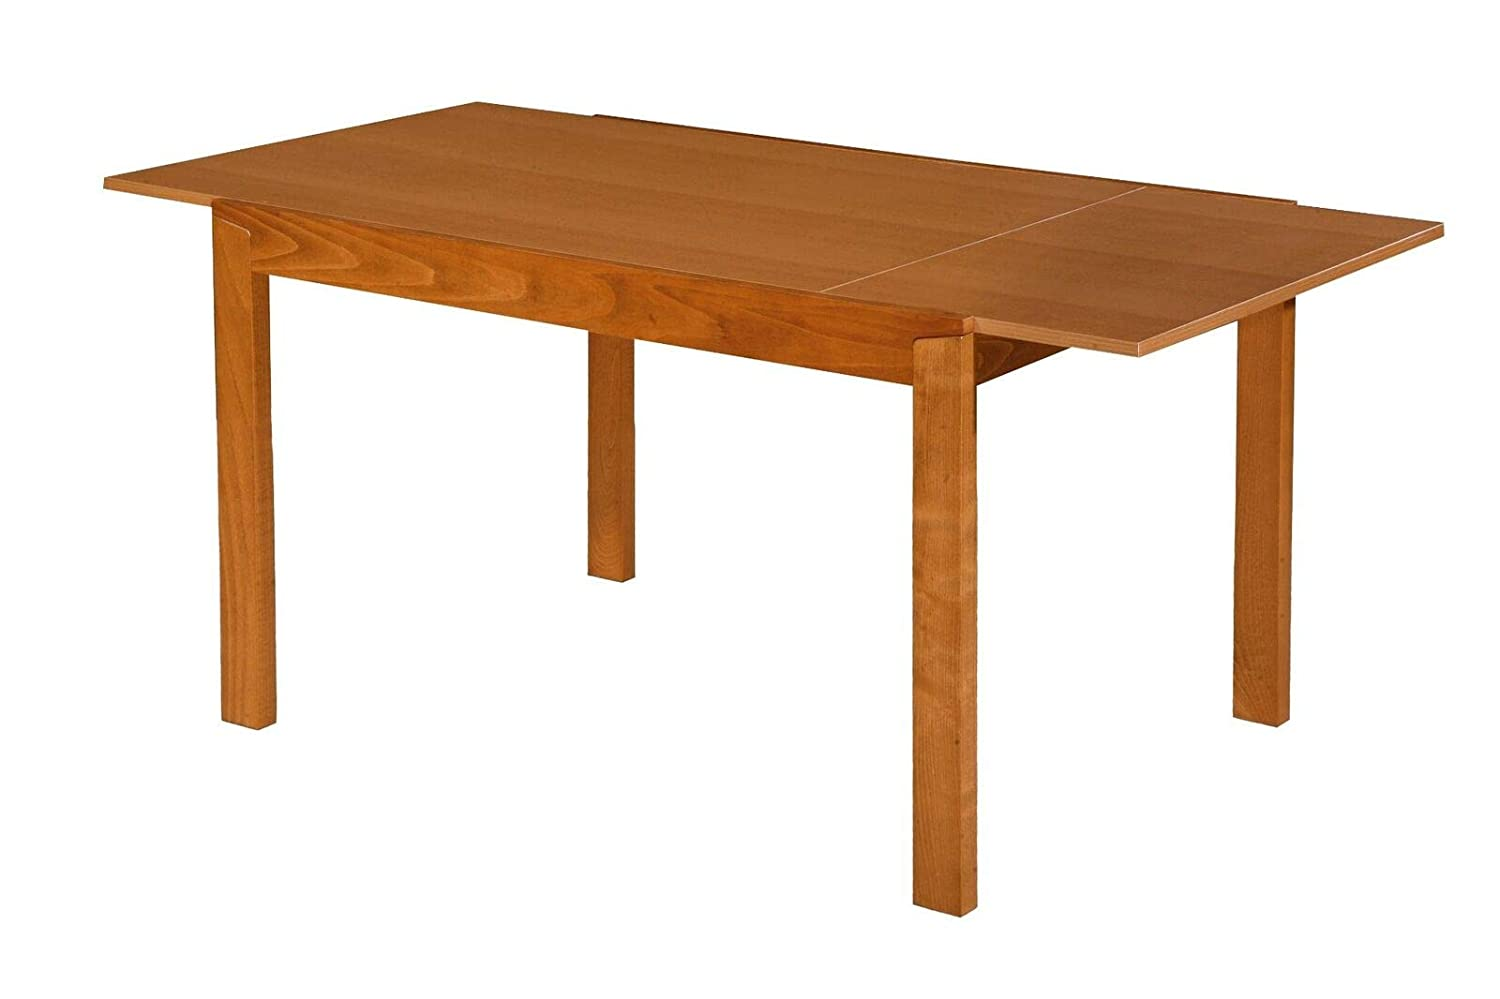 Bravich Extending Dining Table Wood Extendable Kitchen Furniture Sturdy Solid 4//6//8 Seater Honey Oak 120x80x74cm